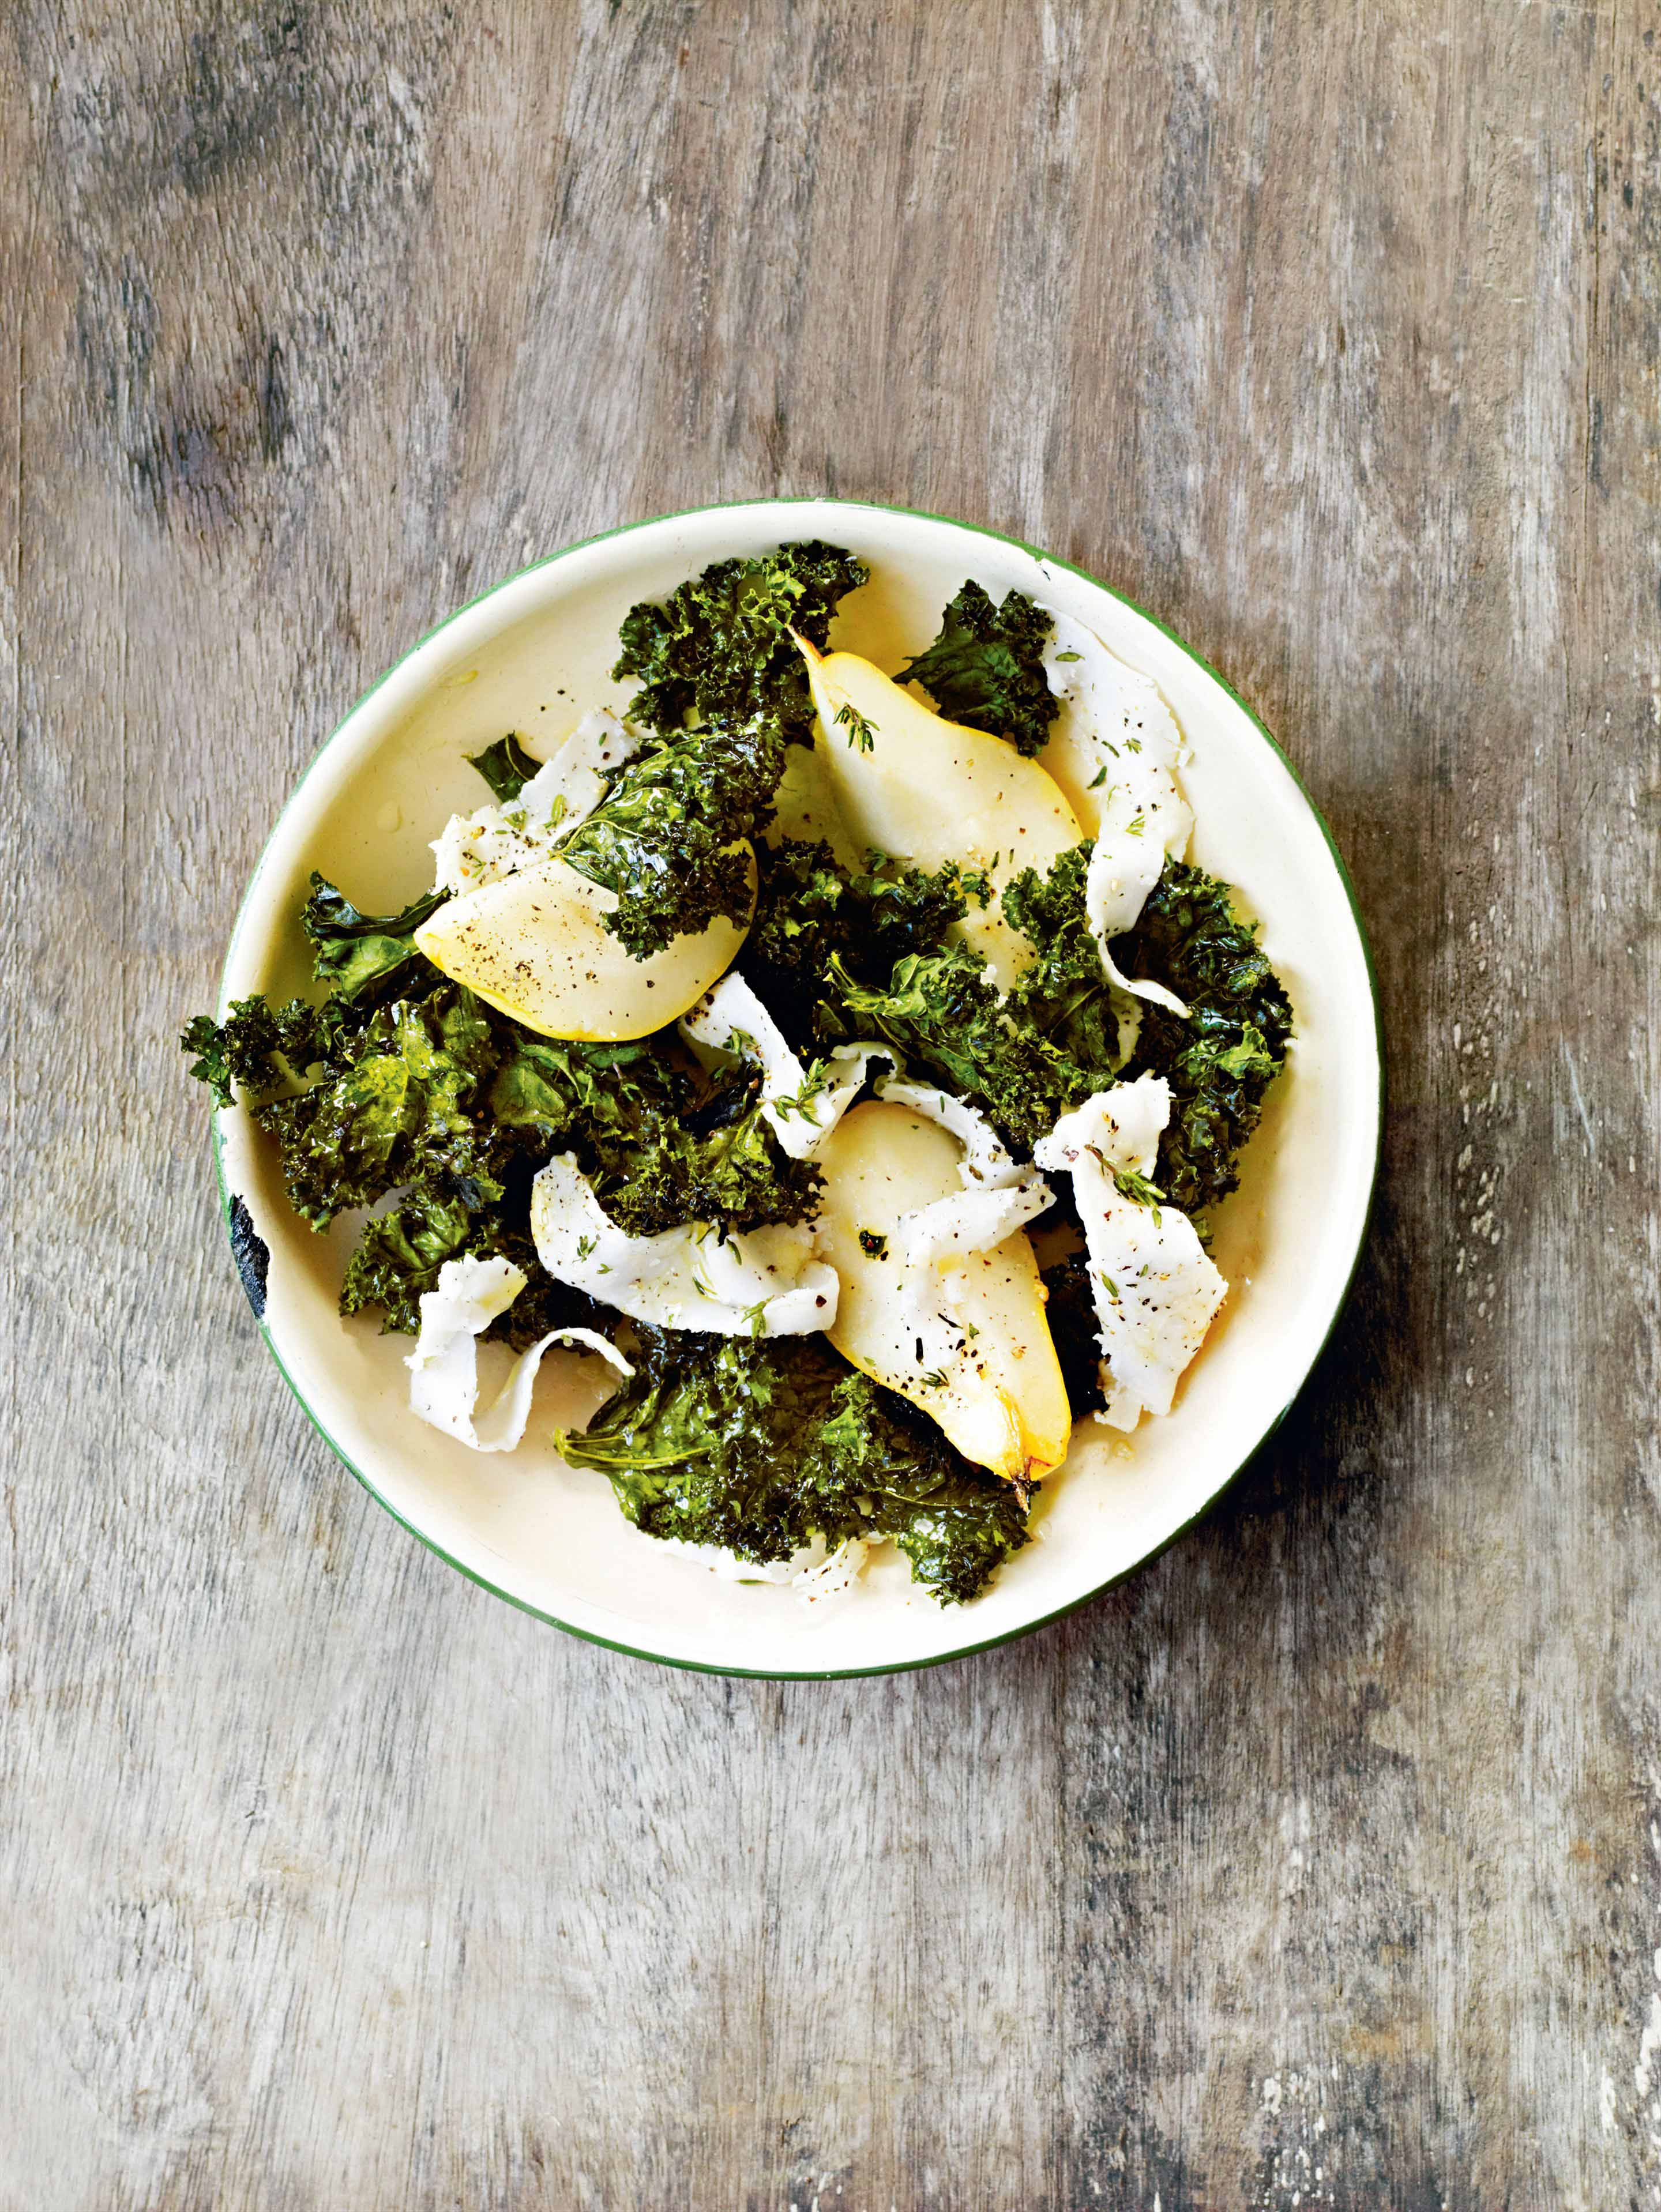 Pears with crisped kale & lardo